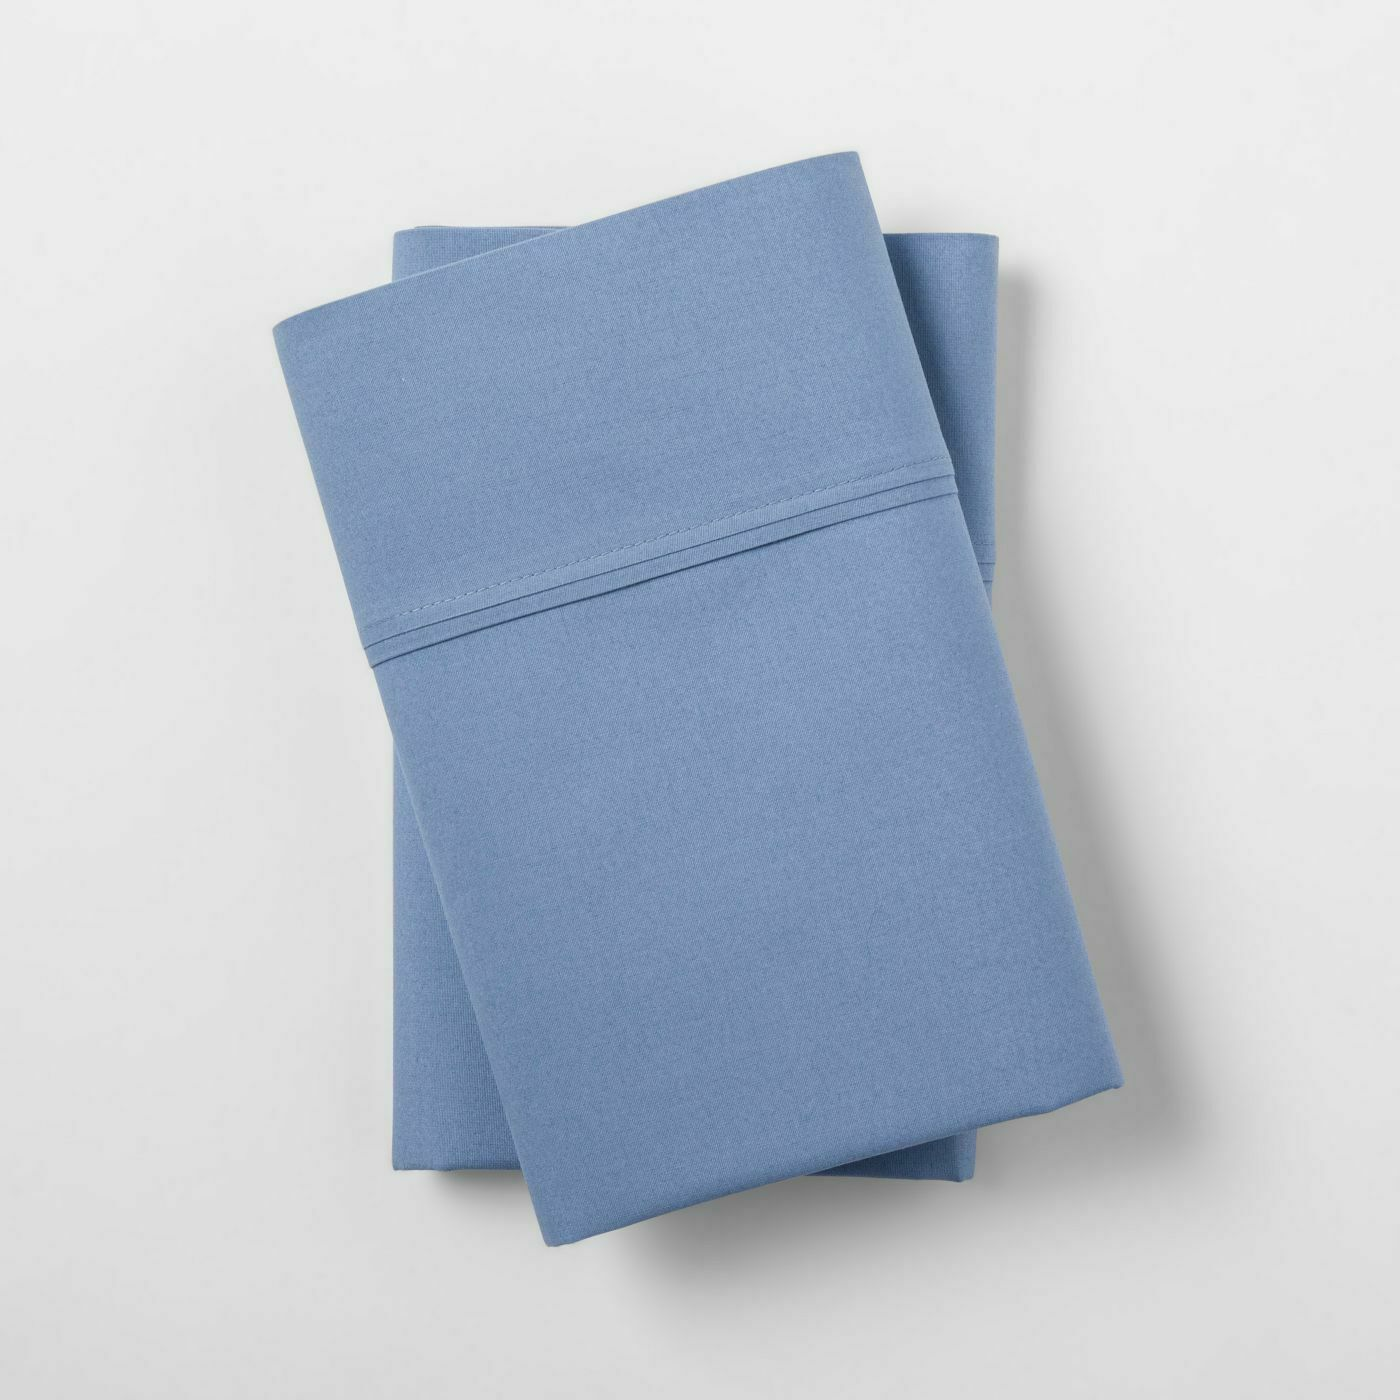 Threshold Ultra Soft Solid Blue Standard Pillowcase Set 300 Thread Count 2 COUNT